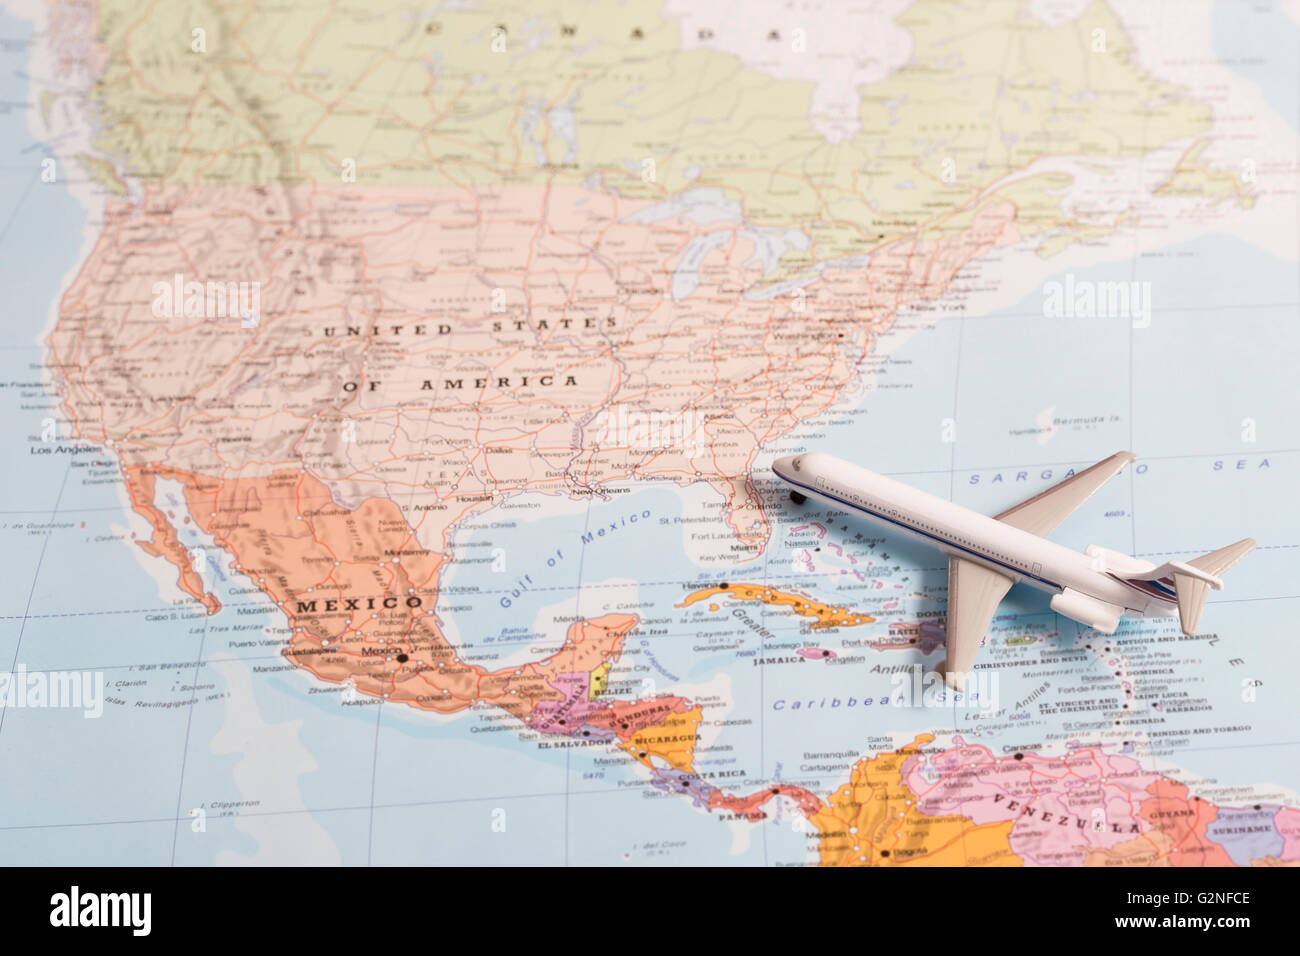 Travel United States Of America A Passenger Plane Over The USA - United states travel map